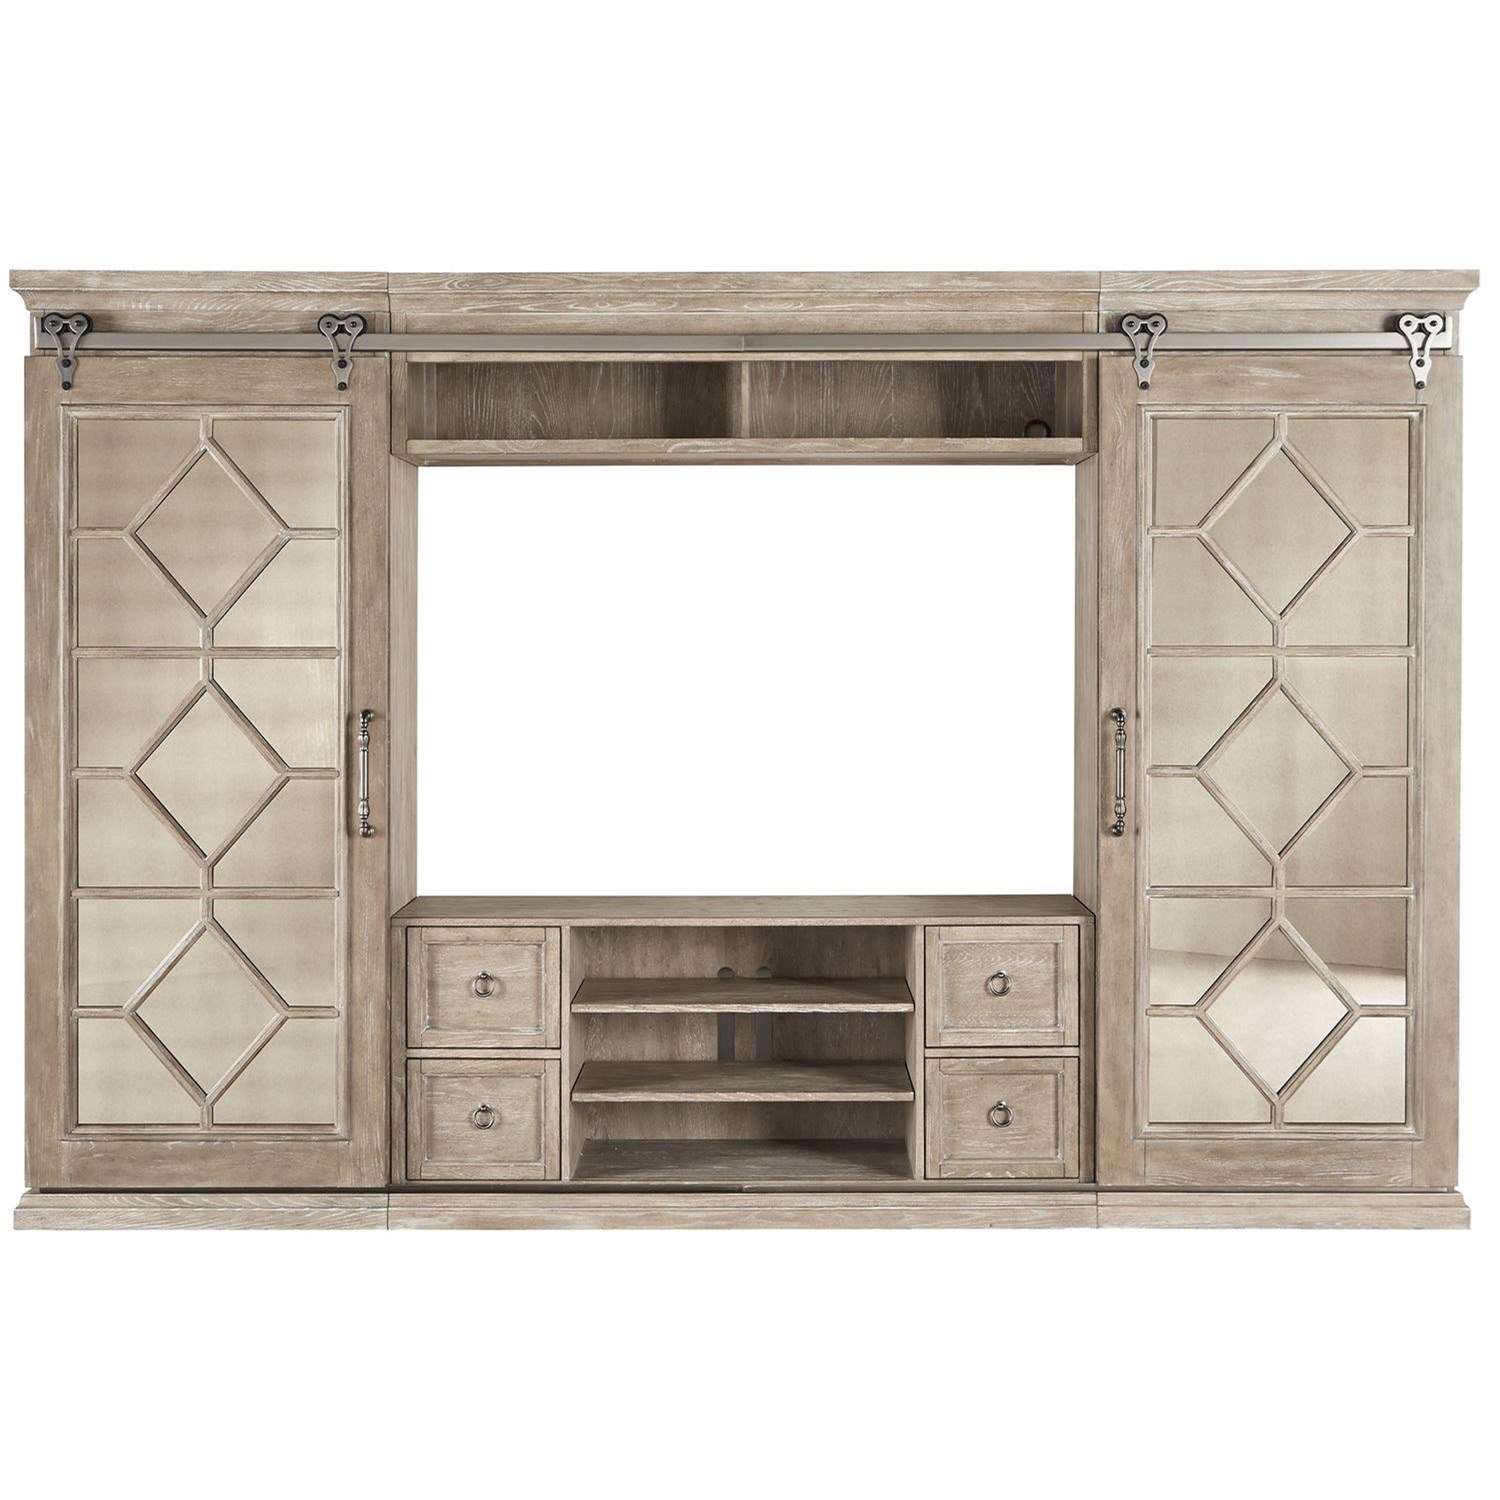 Mirrored Reflections Entertainment Center with Piers  by Liberty Furniture at Northeast Factory Direct